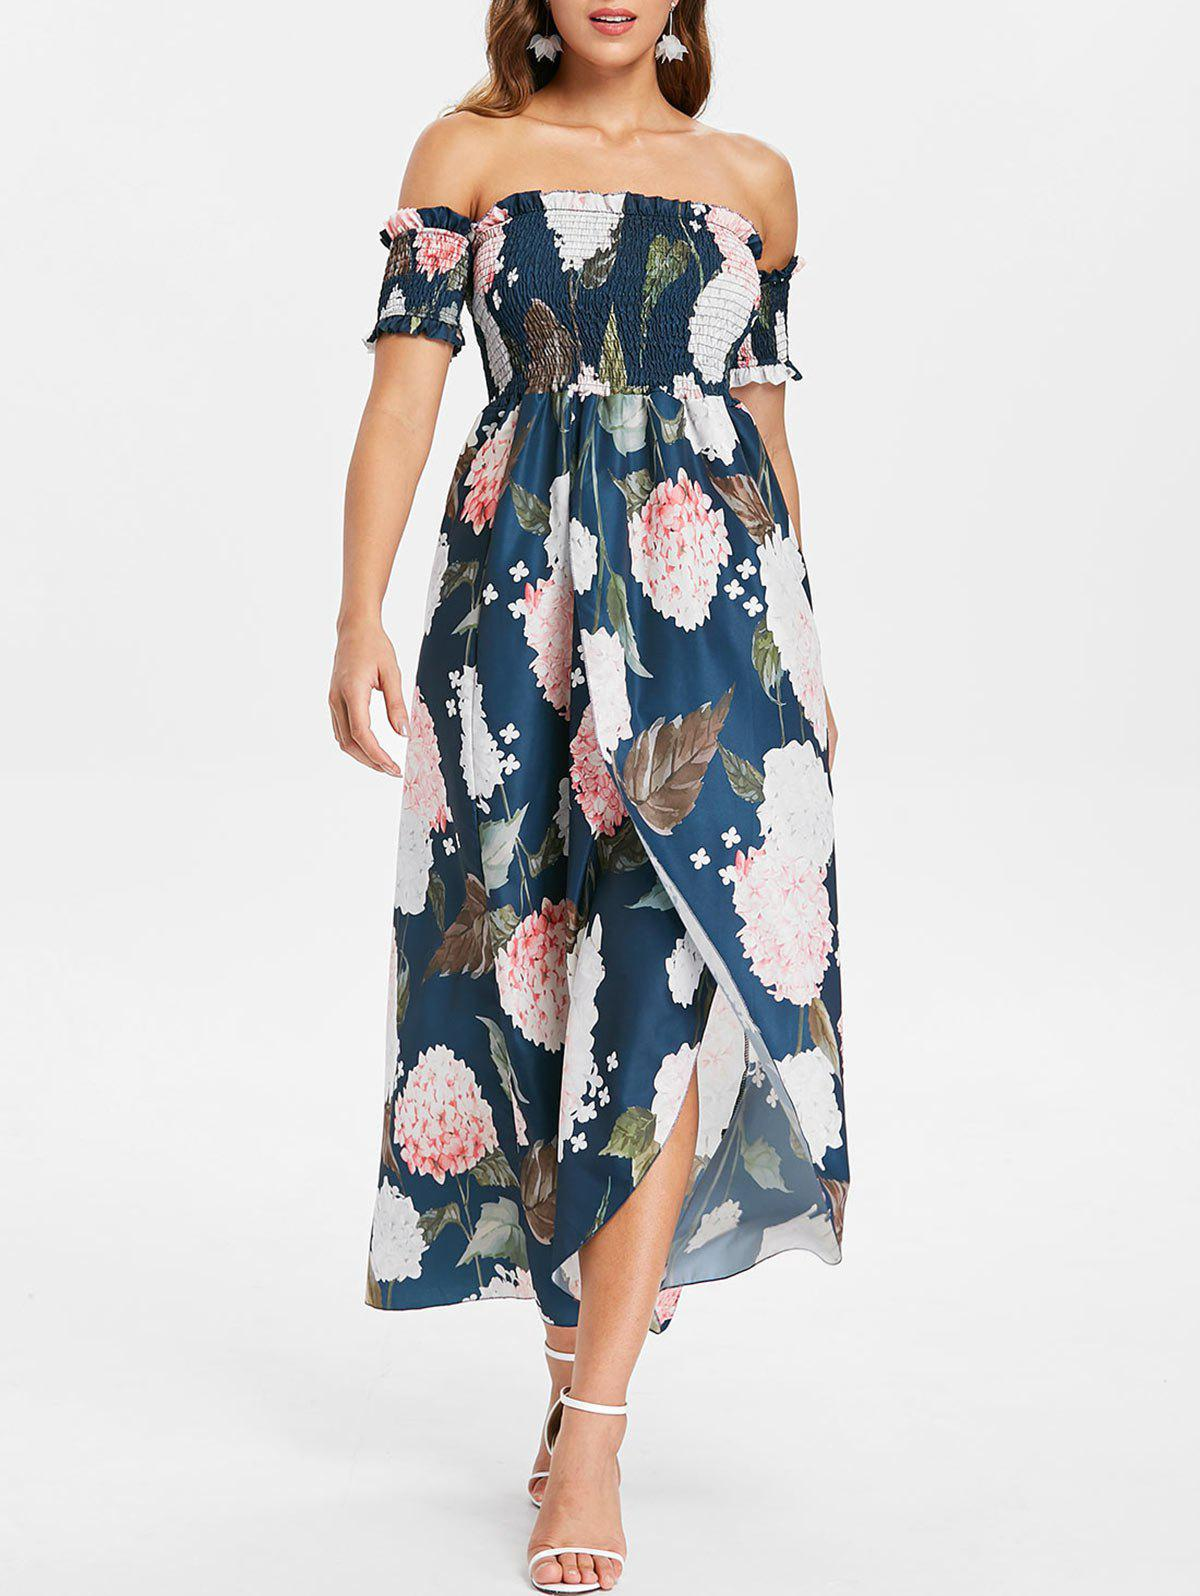 Floral Print Off The Shoulder Maxi Dress - NAVY BLUE M